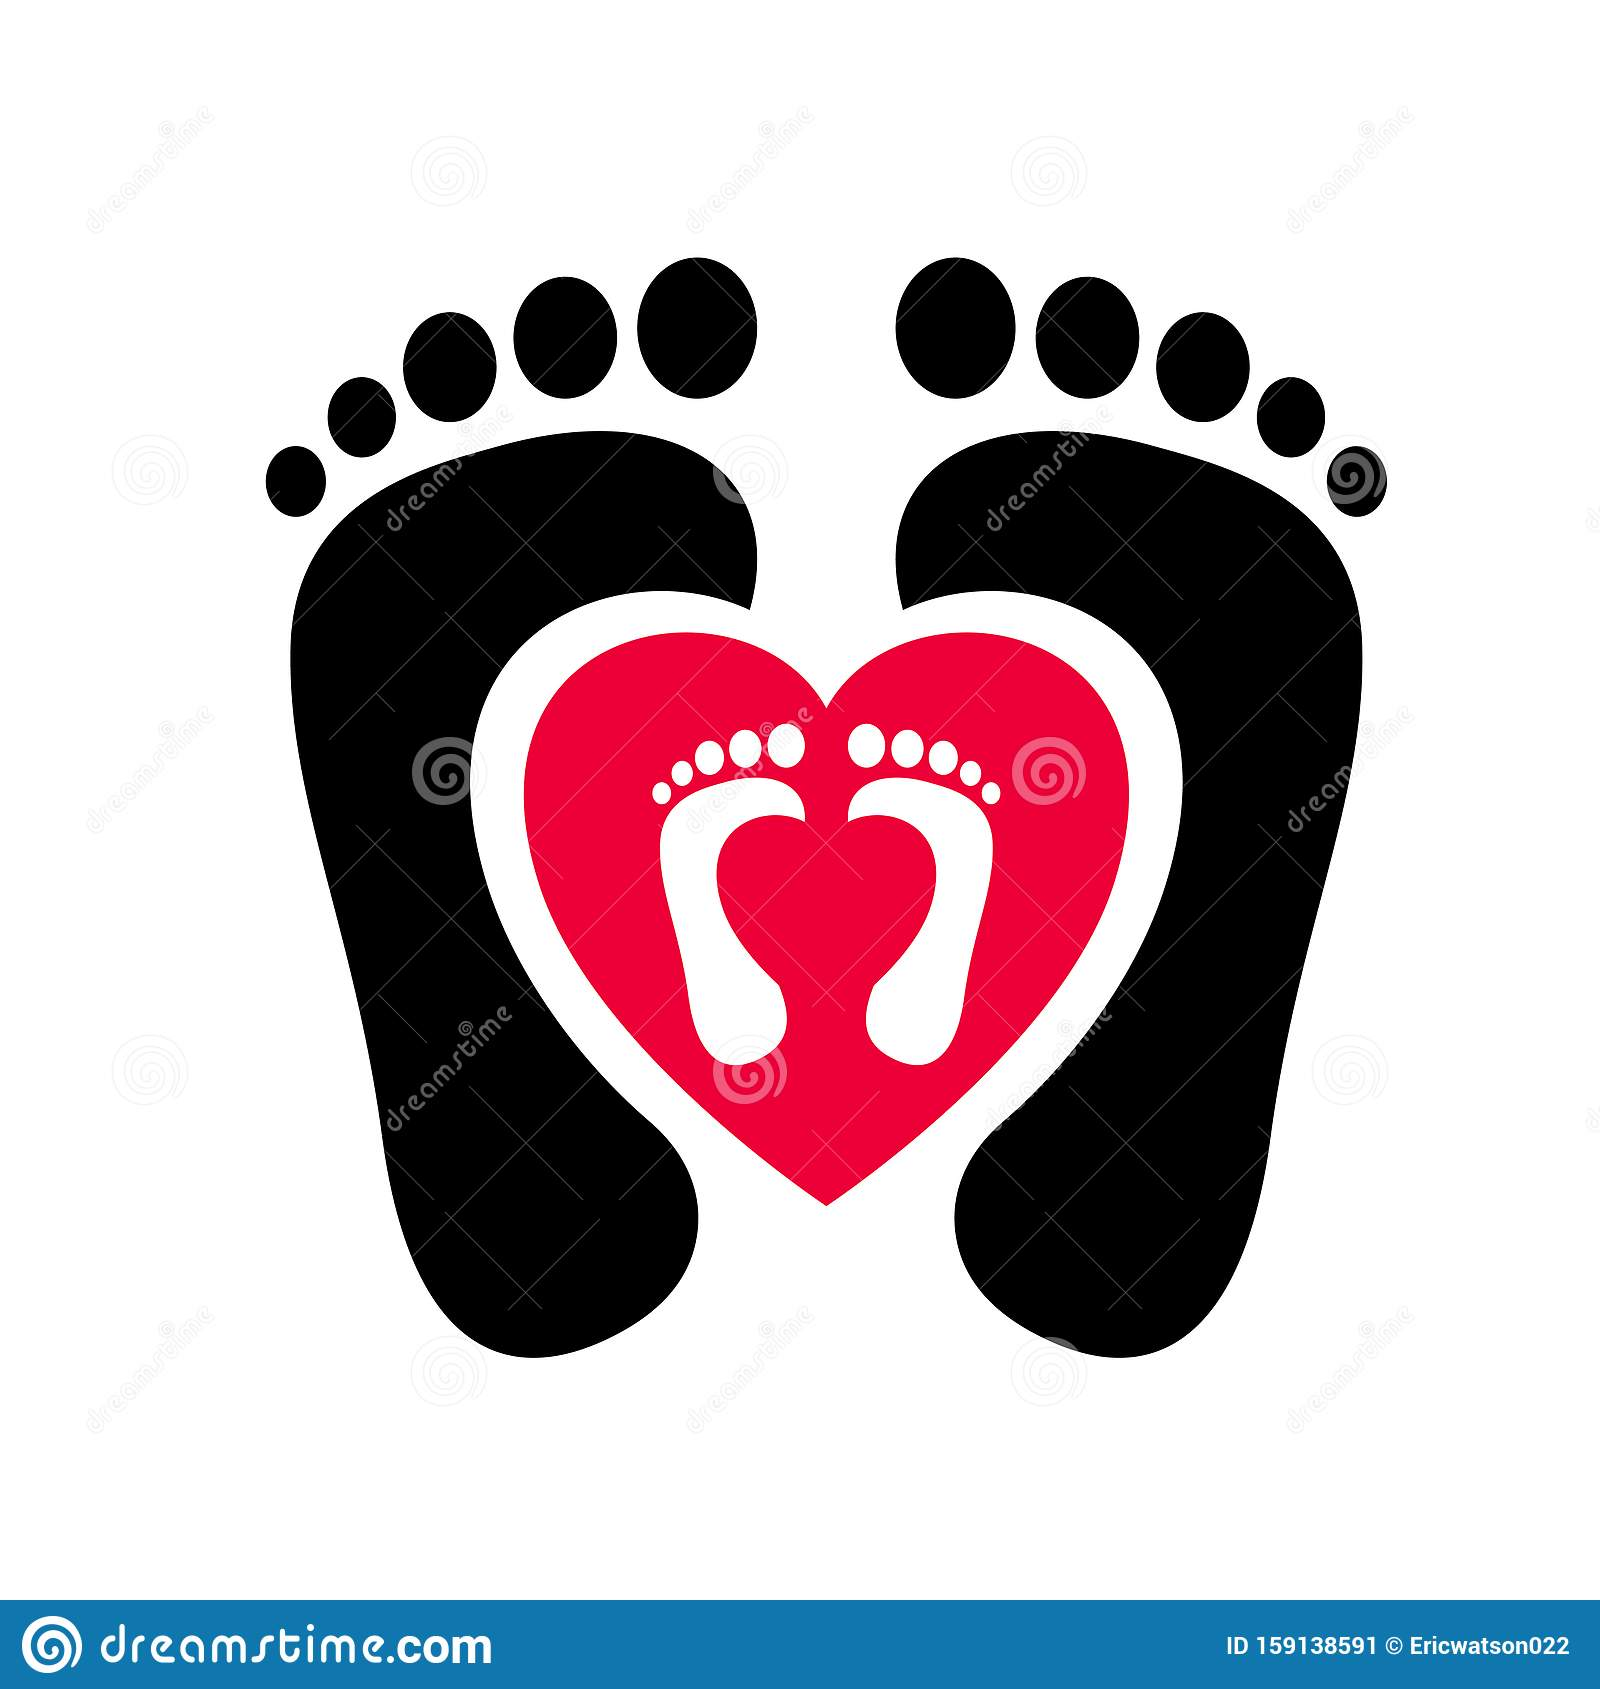 human feet red and black silhouette with inside heart shape feet vector footprint with toes icon stock vector illustration of background inside 159138591 https www dreamstime com human feet heart symbol inside footprint toes icon red black silhouette shape vector image159138591